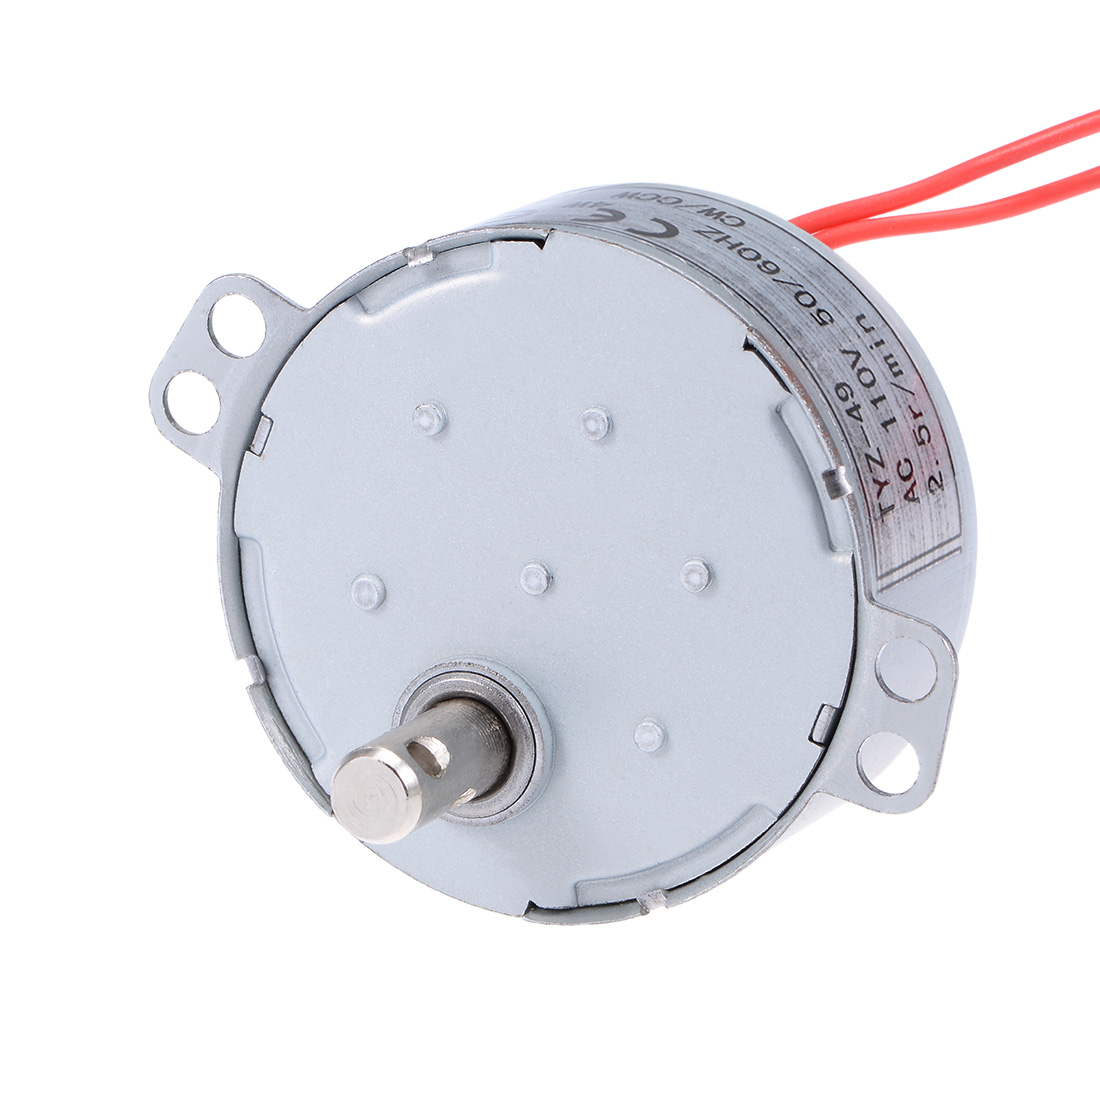 110V 50/60Hz 2.5RPM CW/CCW AC Synchronous Motor Turntable Gear Box for Microwave Oven